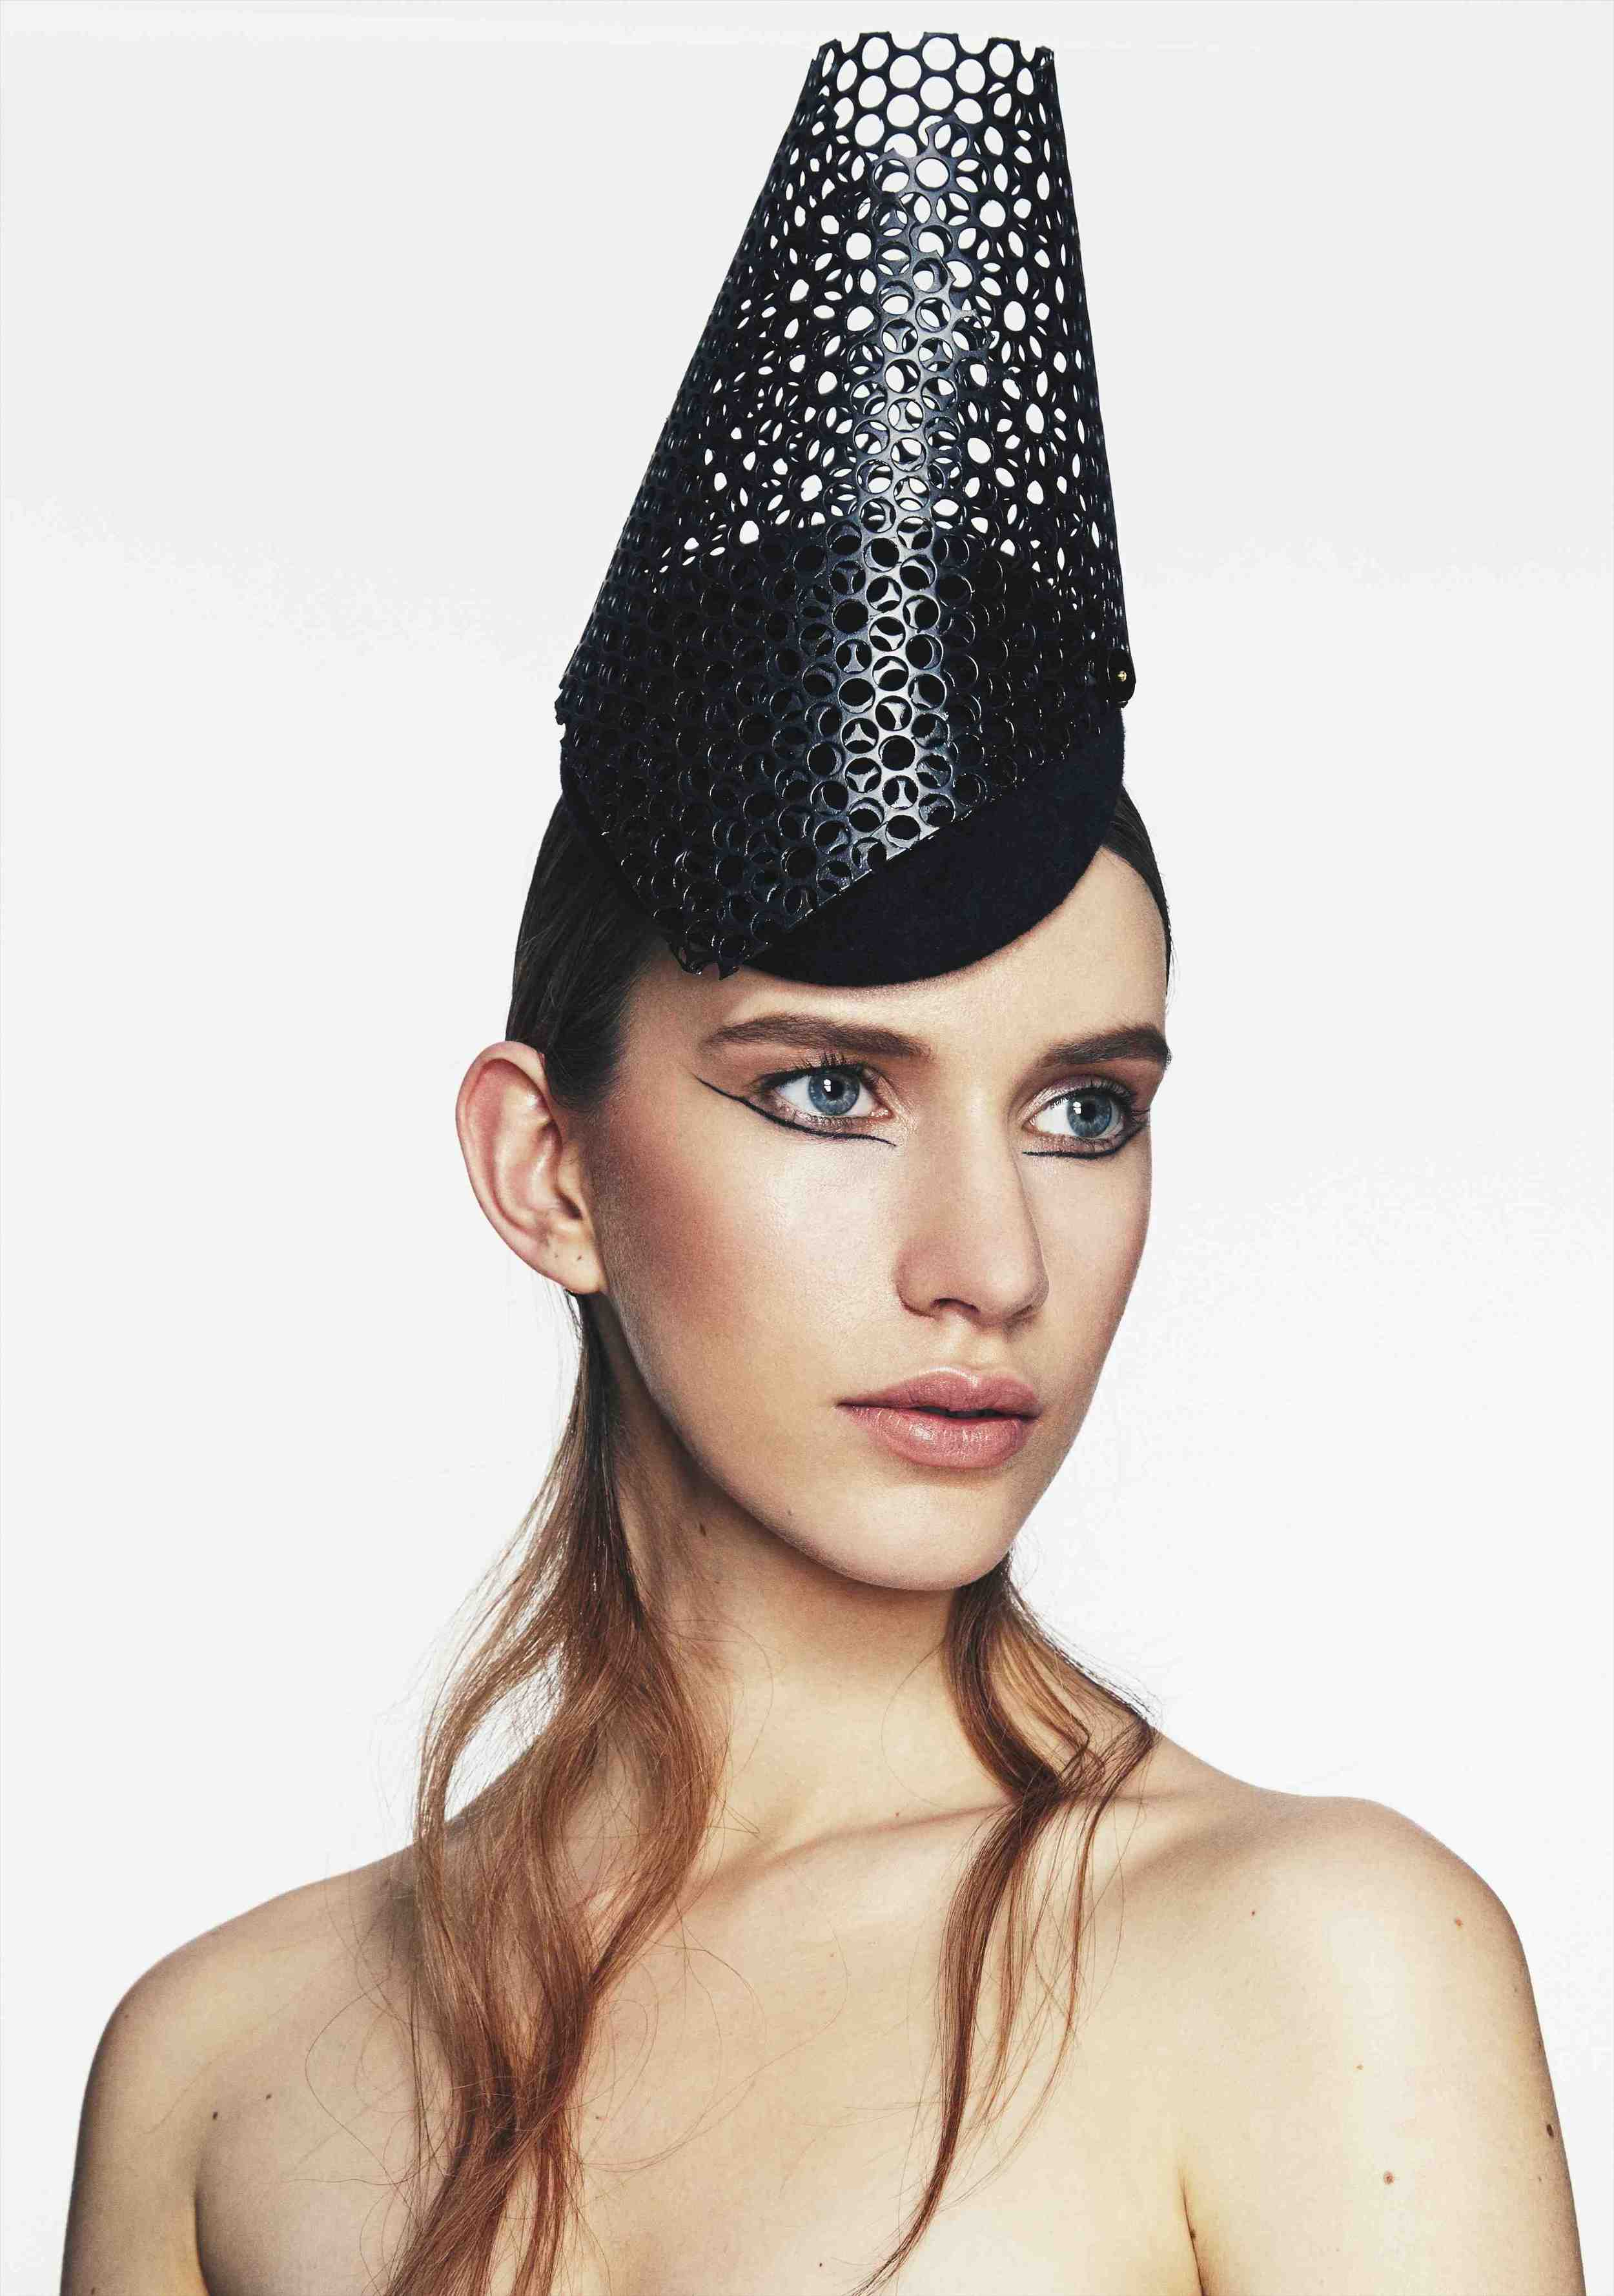 Perforated Headpiece